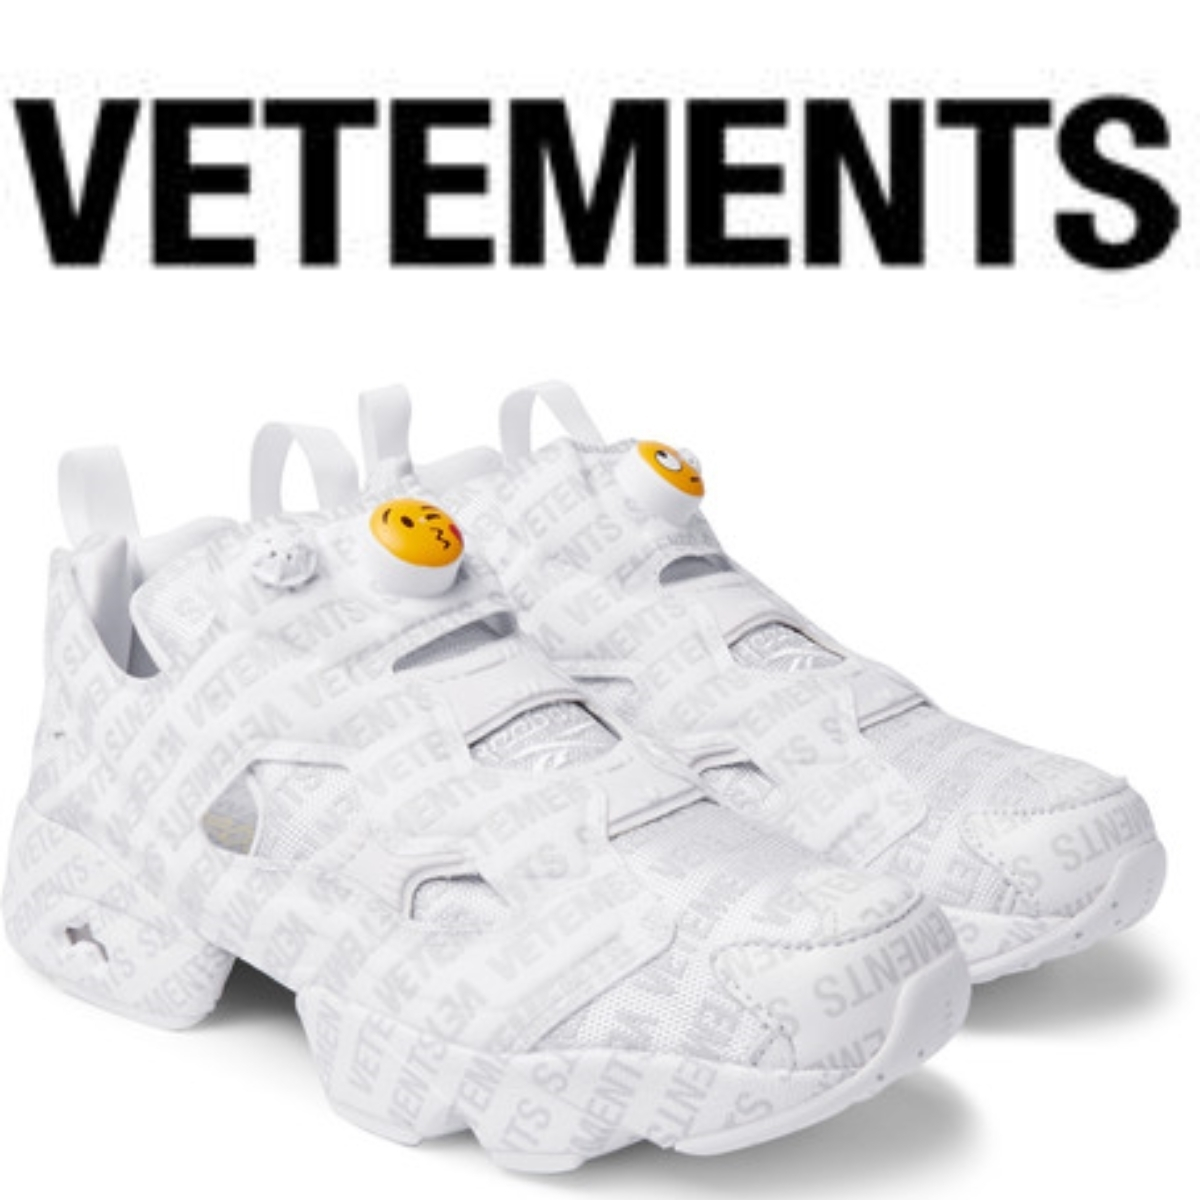 関税送料込☆VETEMENTS×Reebok☆InstaPump Fury☆グレー